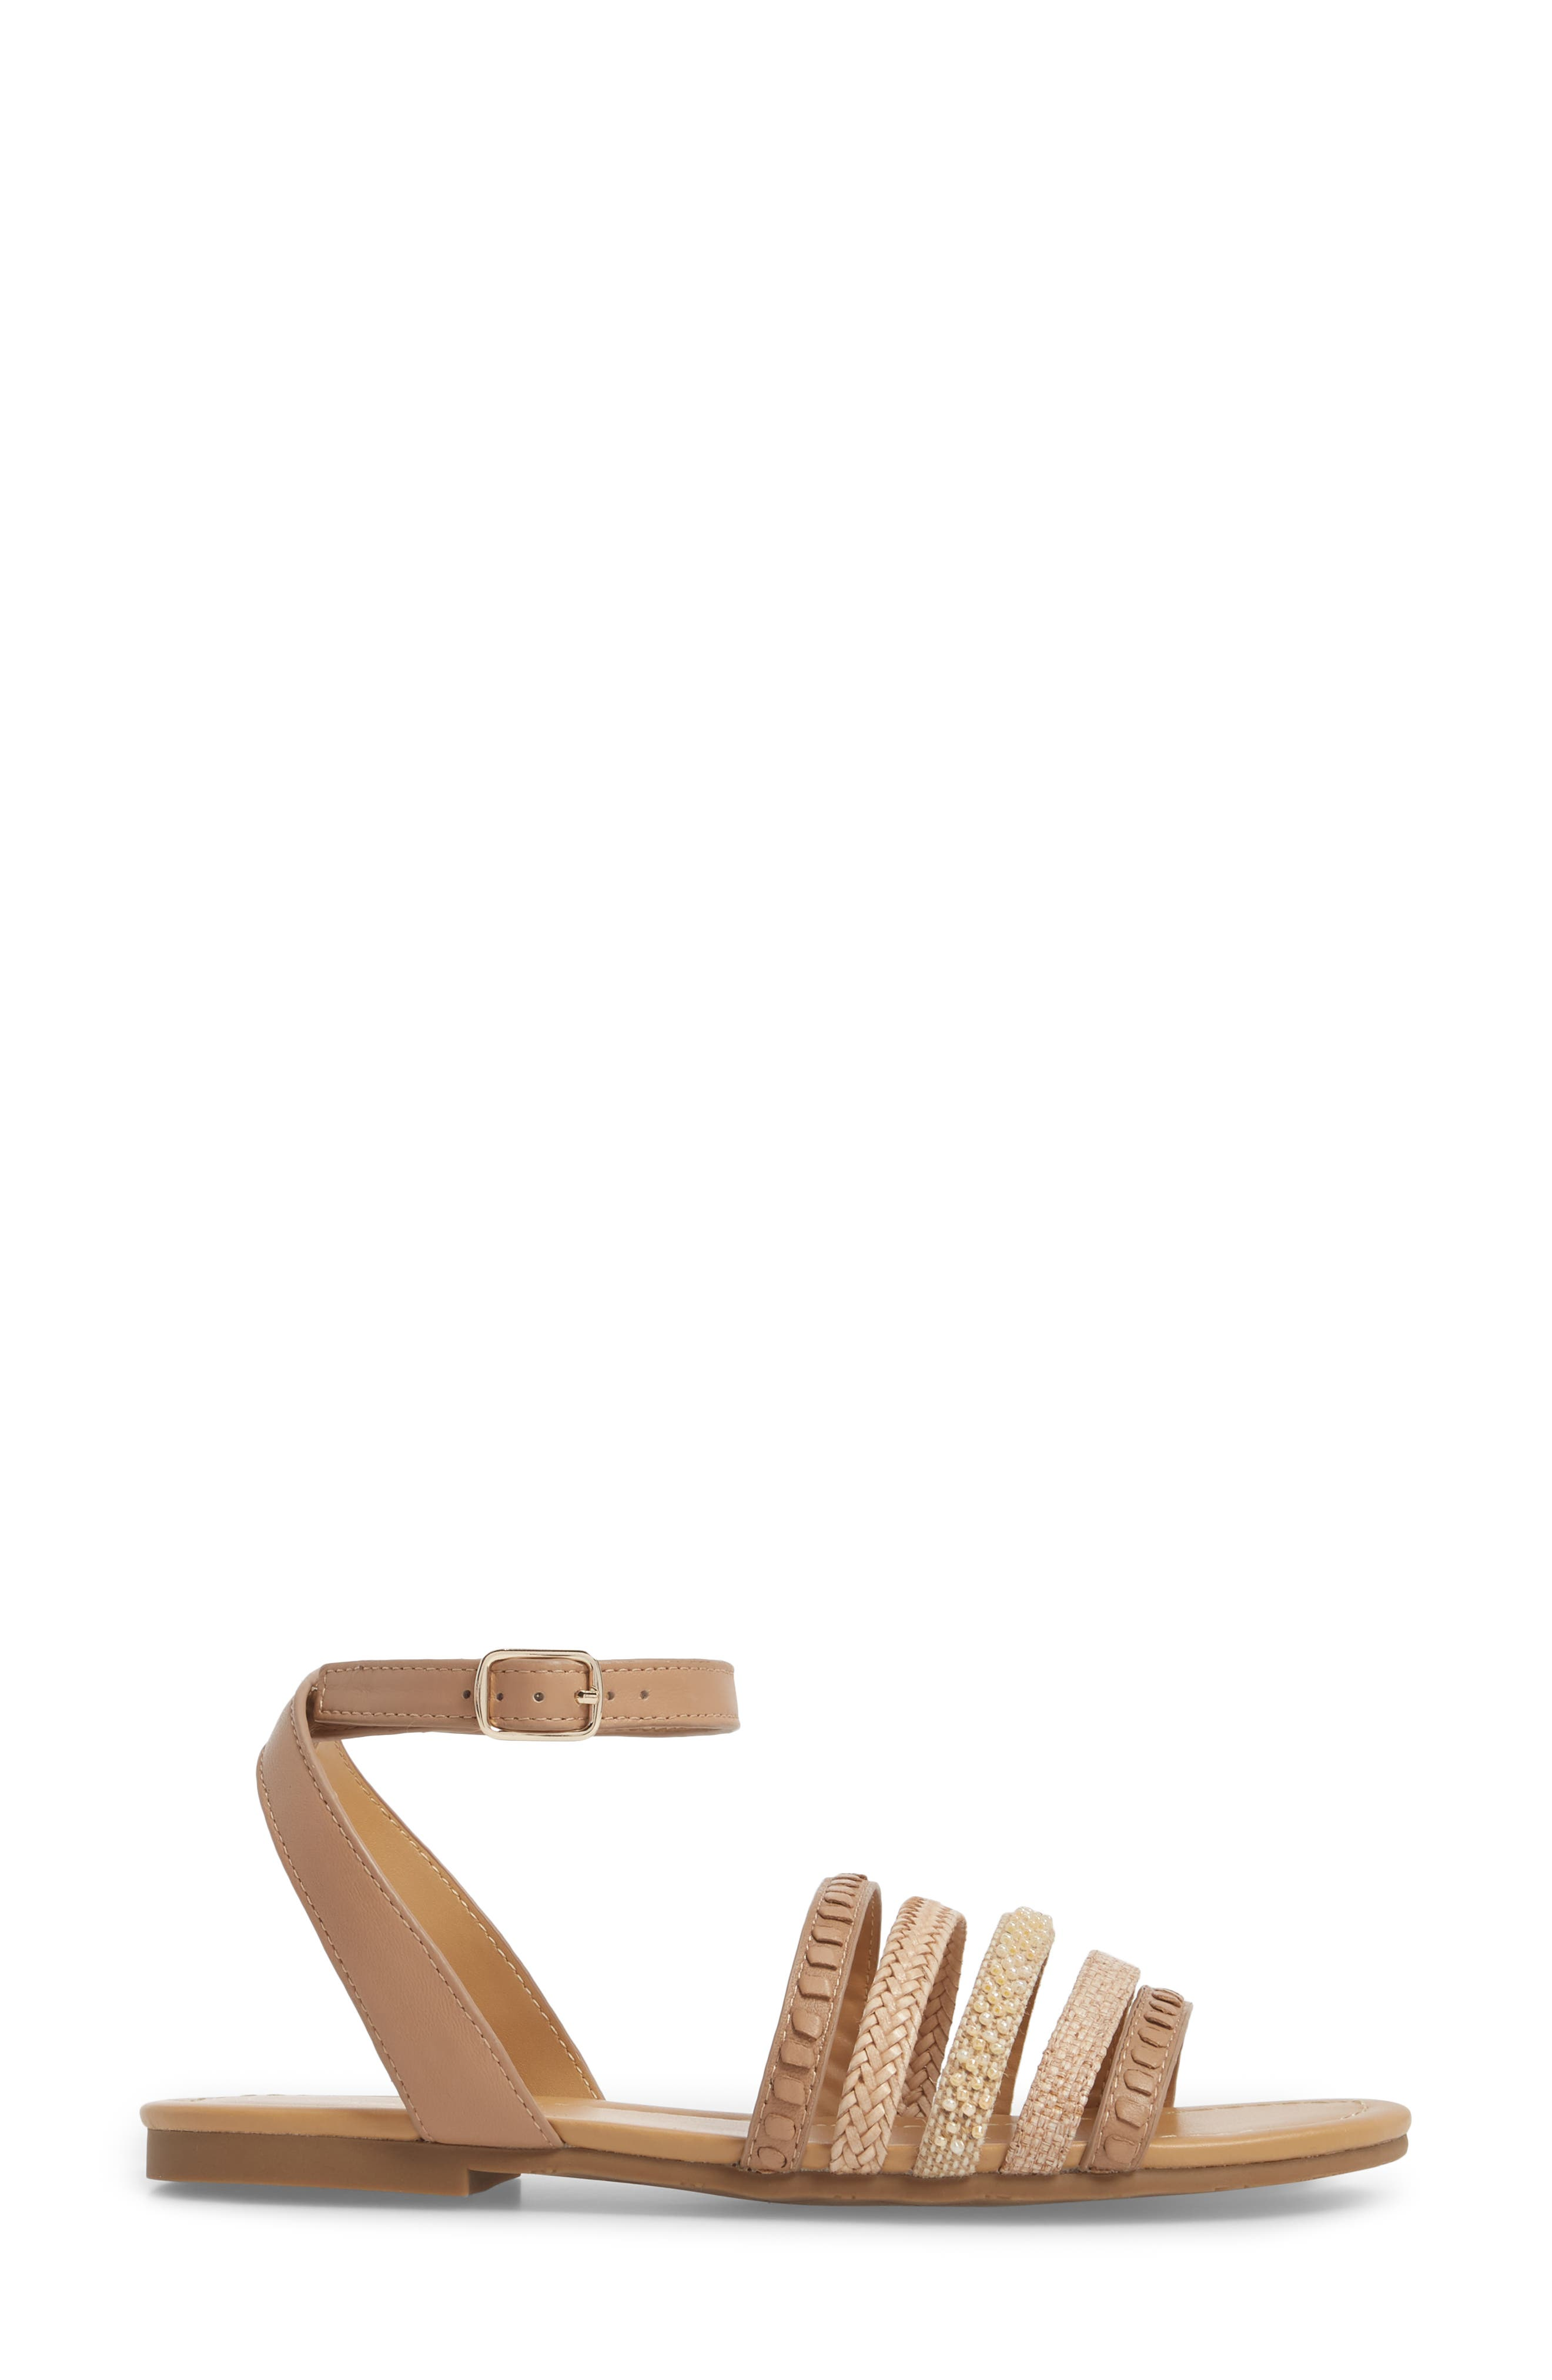 Hannah Braided Embellished Sandal,                             Alternate thumbnail 3, color,                             BUFF LEATHER